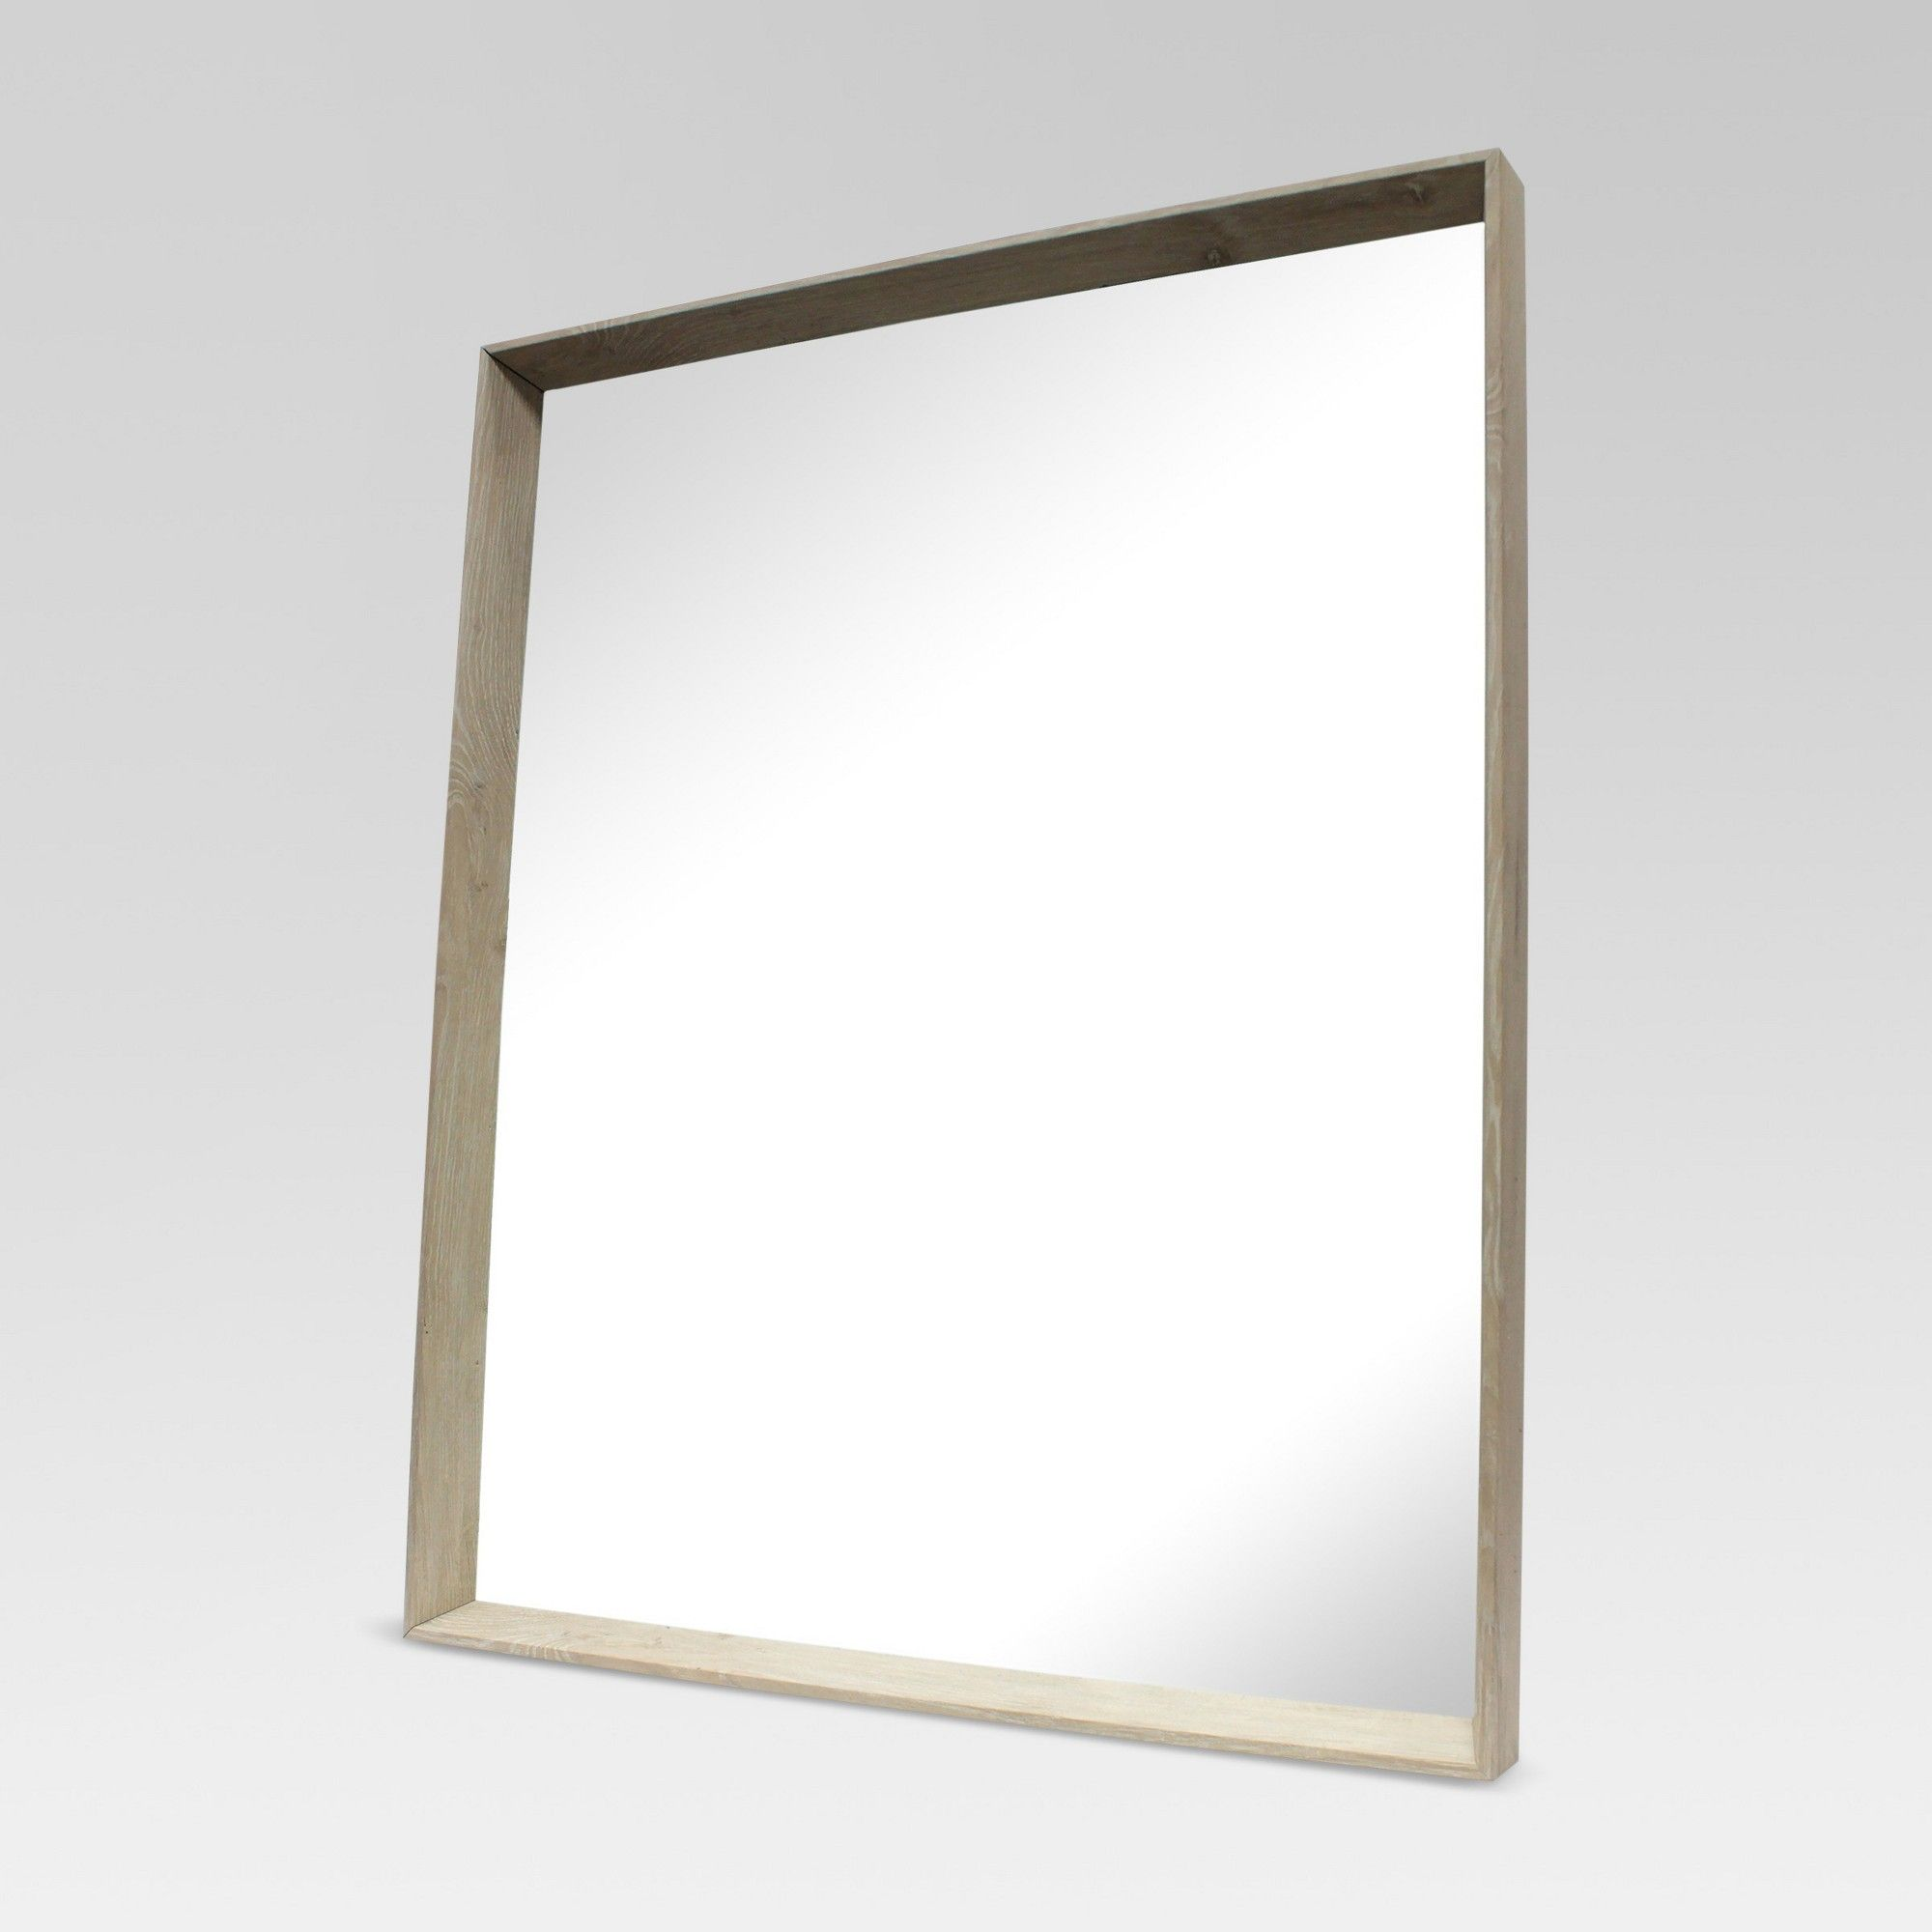 Square Ash Decorative Wall Mirror  Project 62, Brown